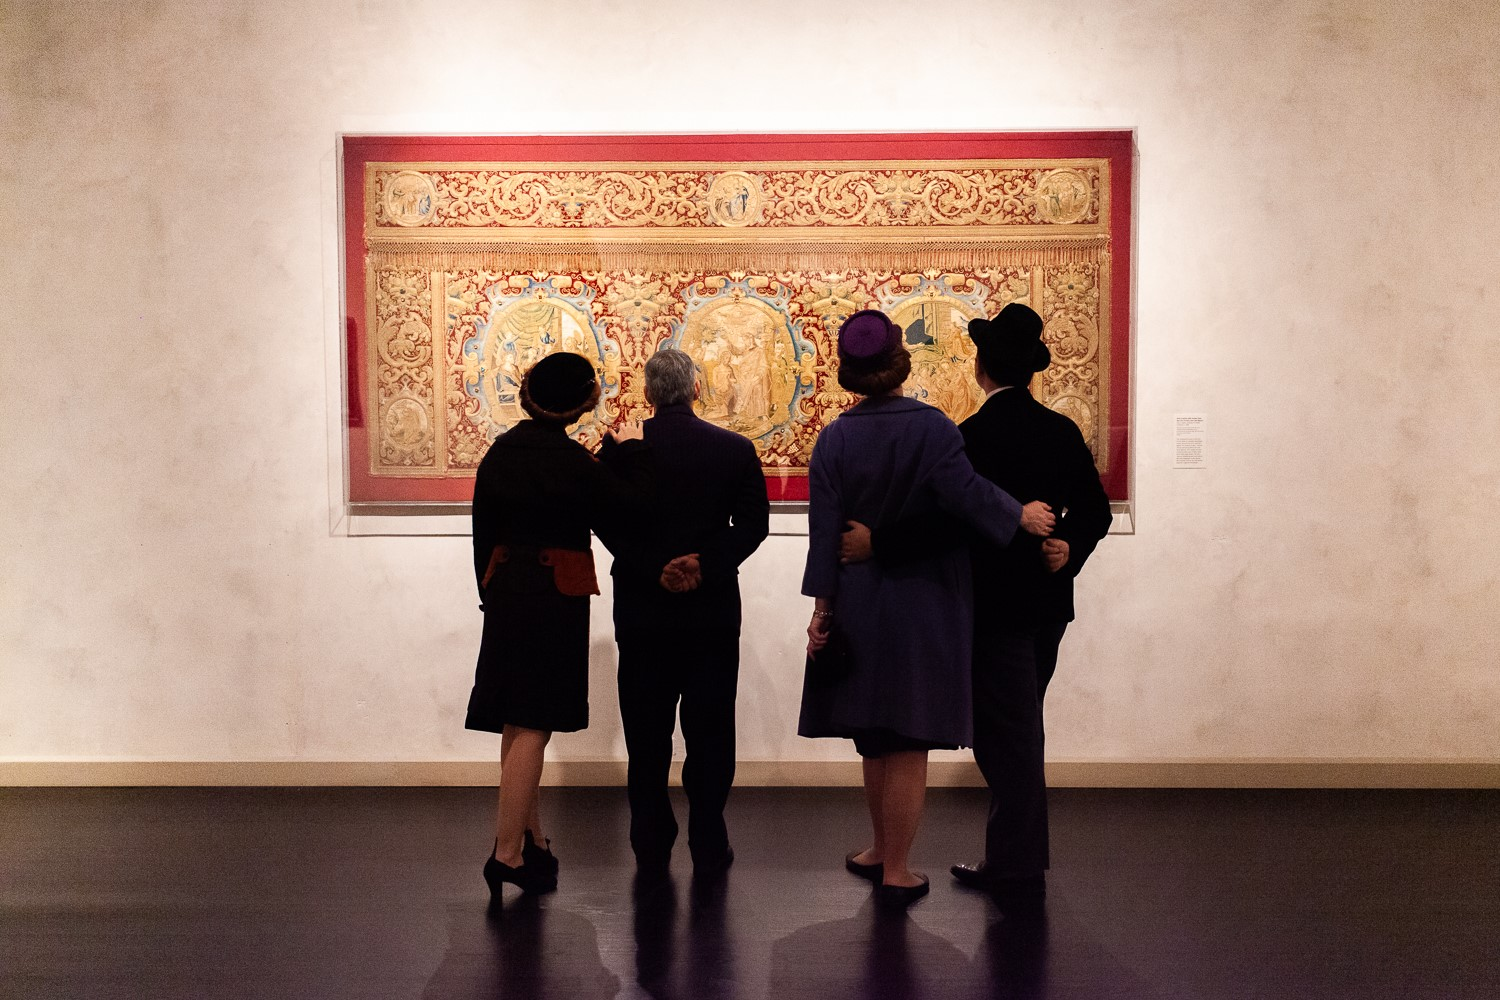 Four people standing looking at large painting in gallery